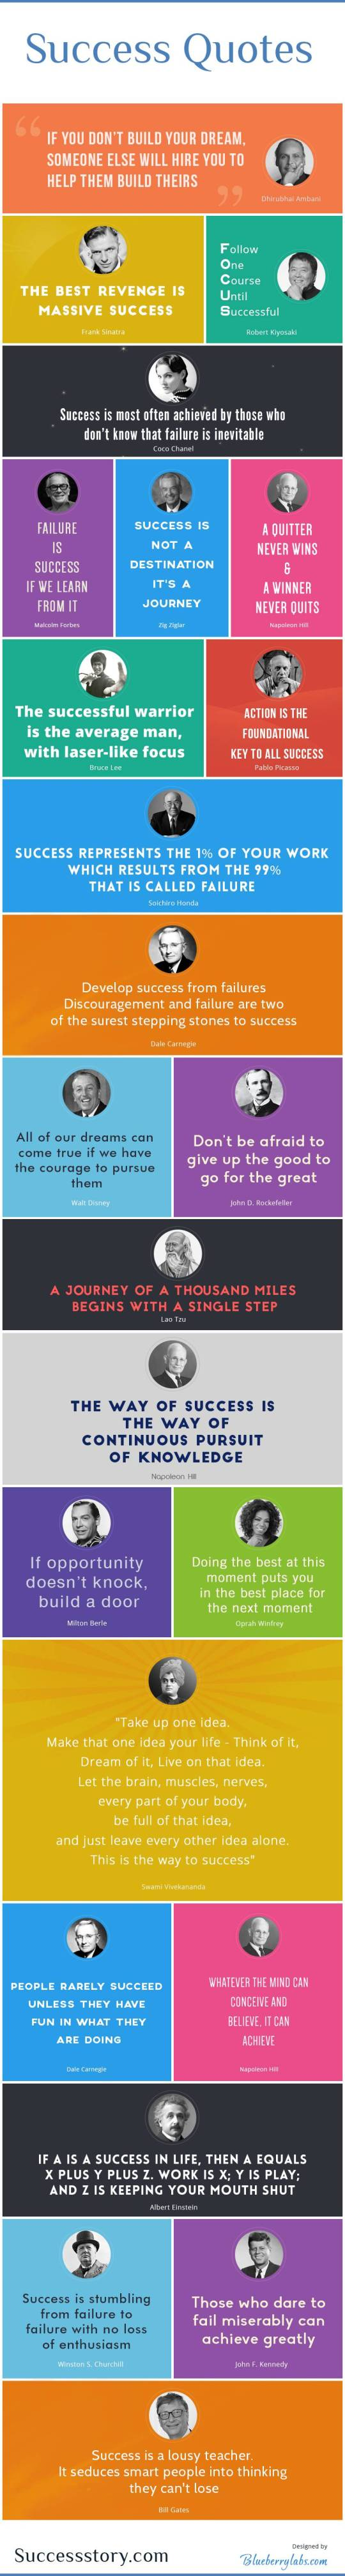 SUCCESS QUOTES INFOGRAPHIC